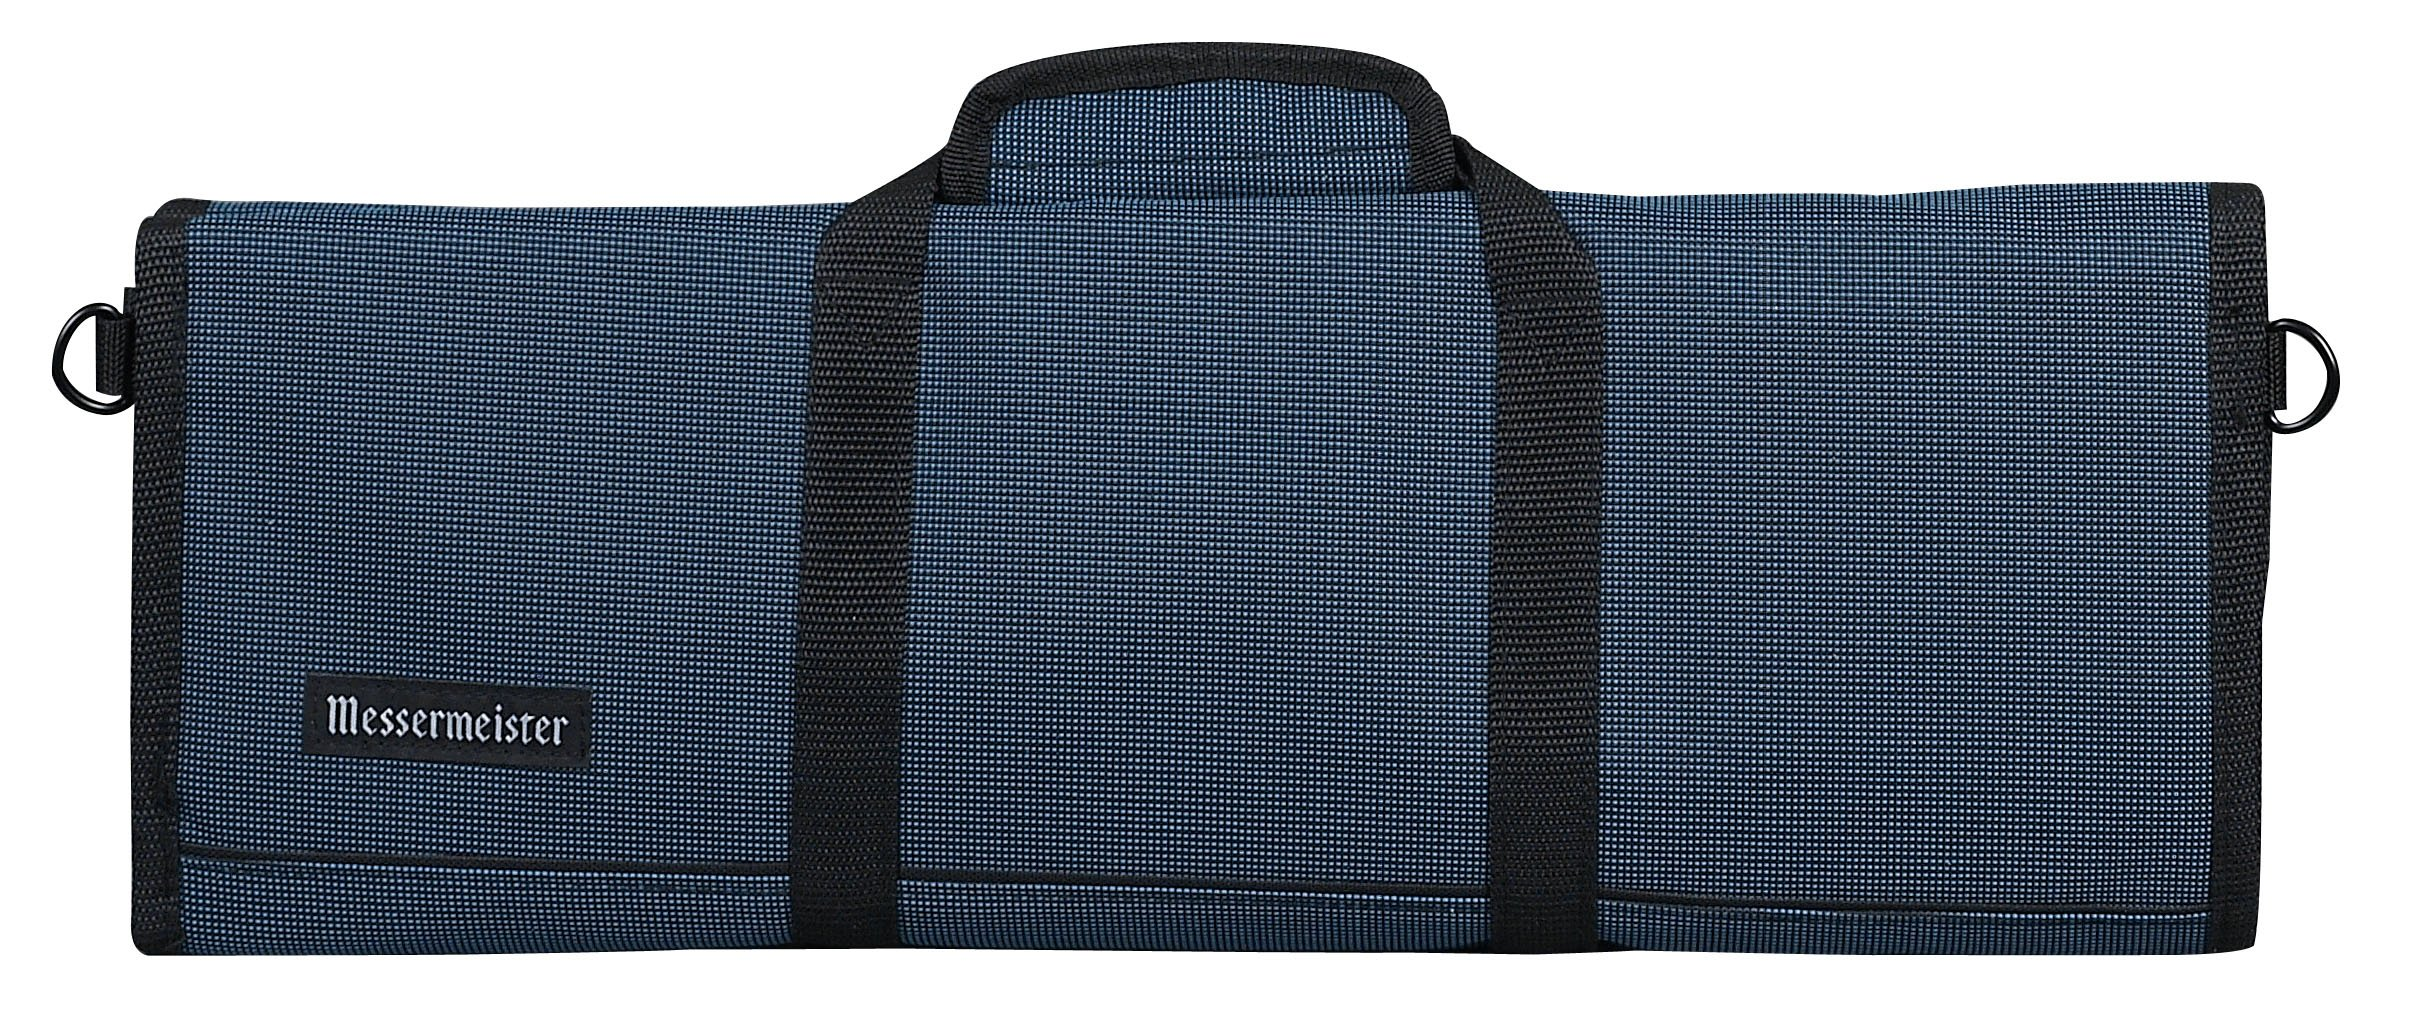 Messermeister 12-Pocket Padded Knife Roll, Black and Blue Woven by Messermeister (Image #1)